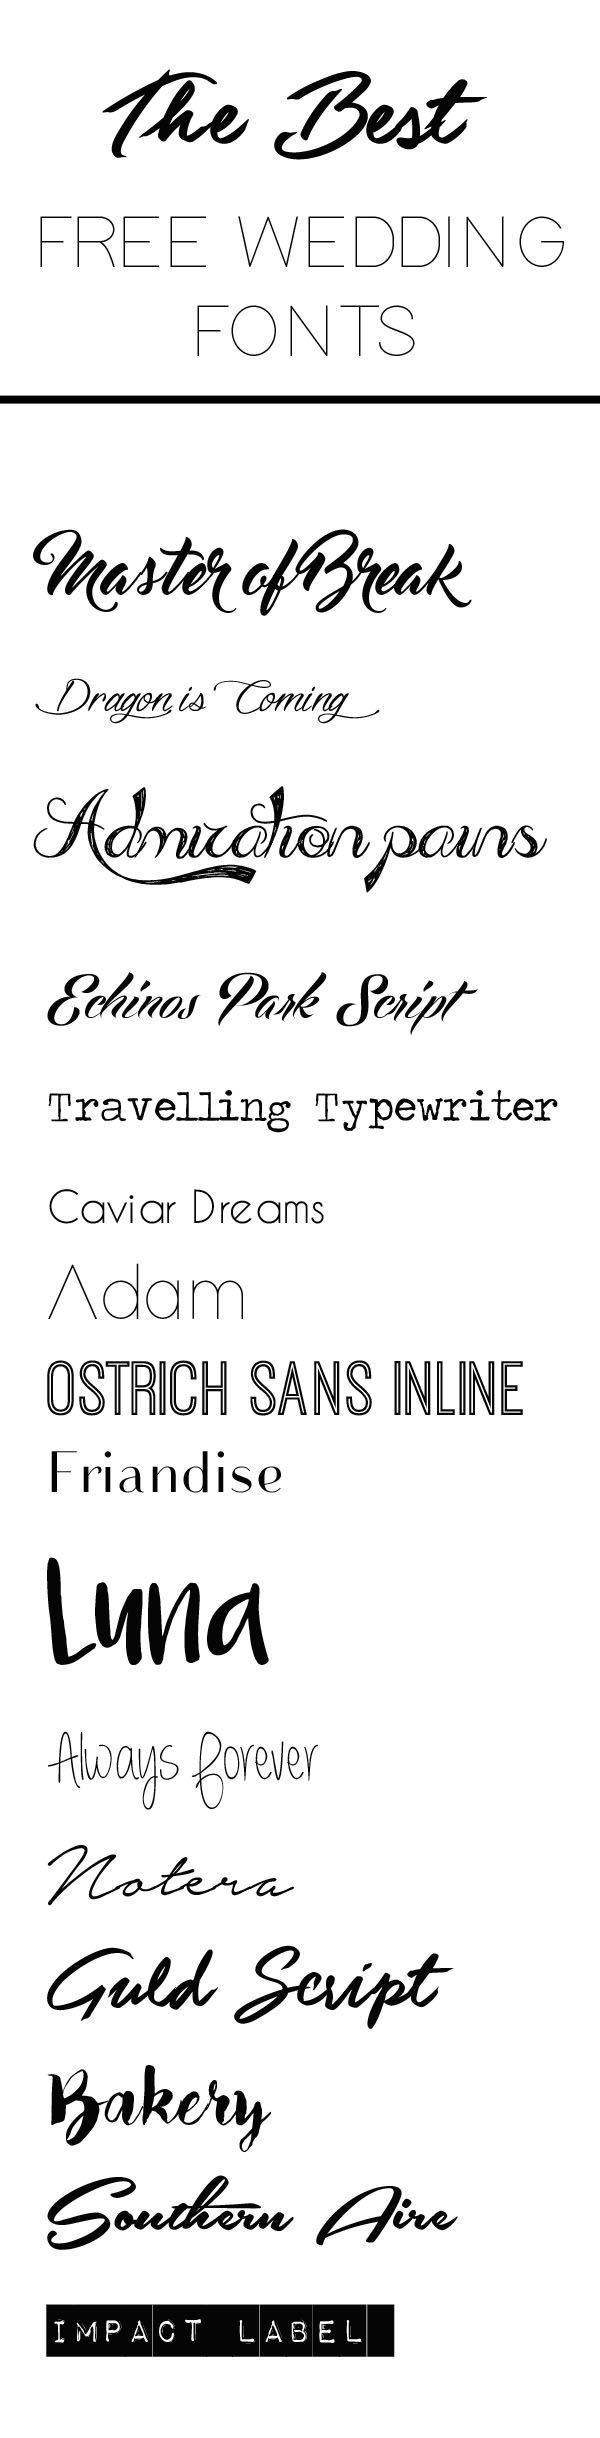 The Best Free Wedding Fonts - free download - put together by /theweddingomd/ // Wedding Ideas